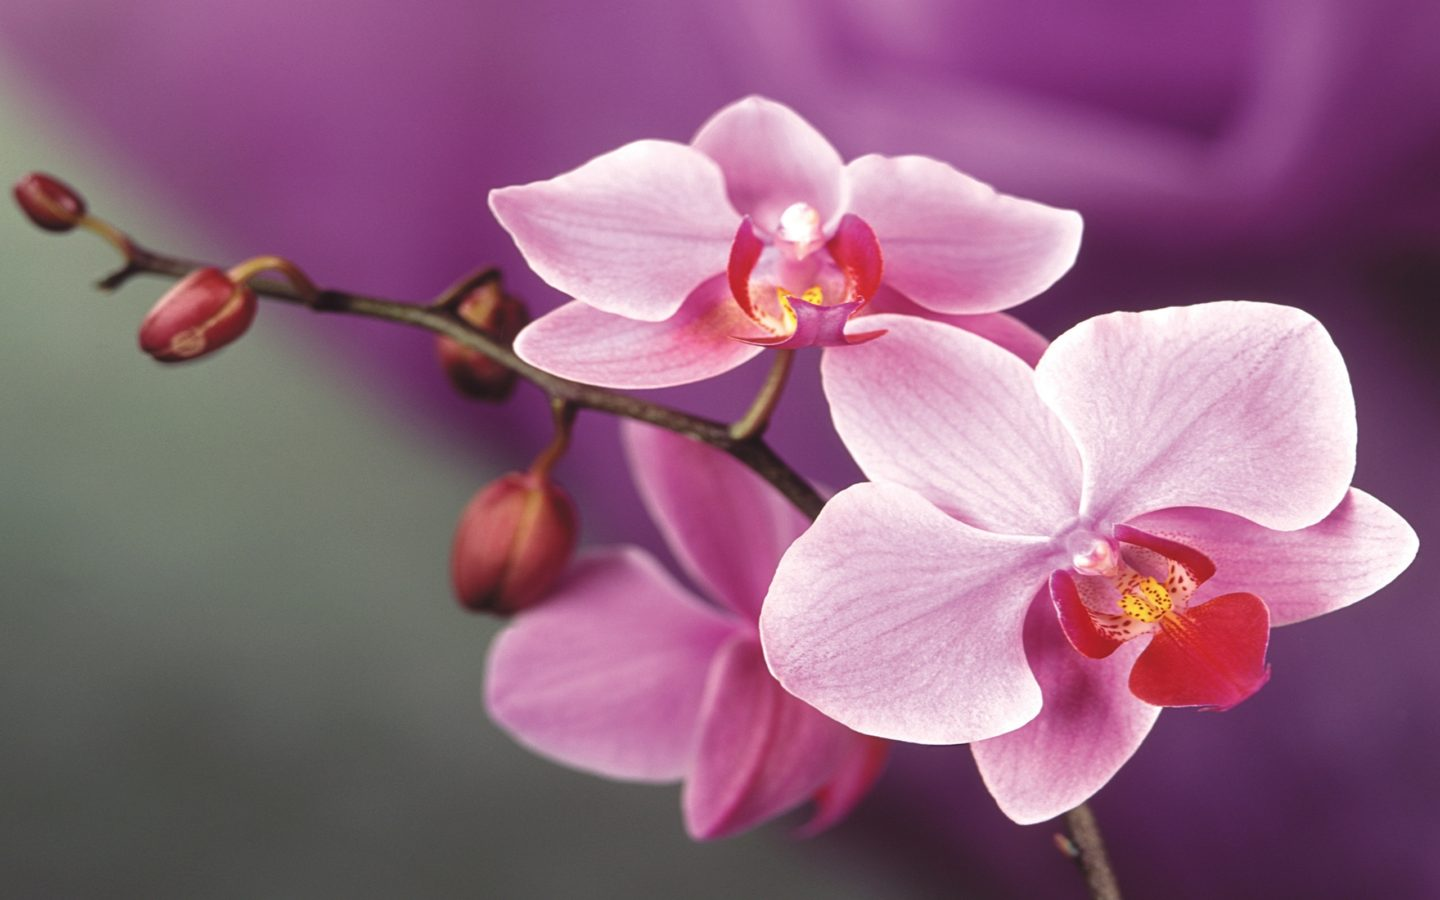 Orchid Iphone Wallpaper Pink Orchid Flowers 2560x1600 Wallpapers13 Com